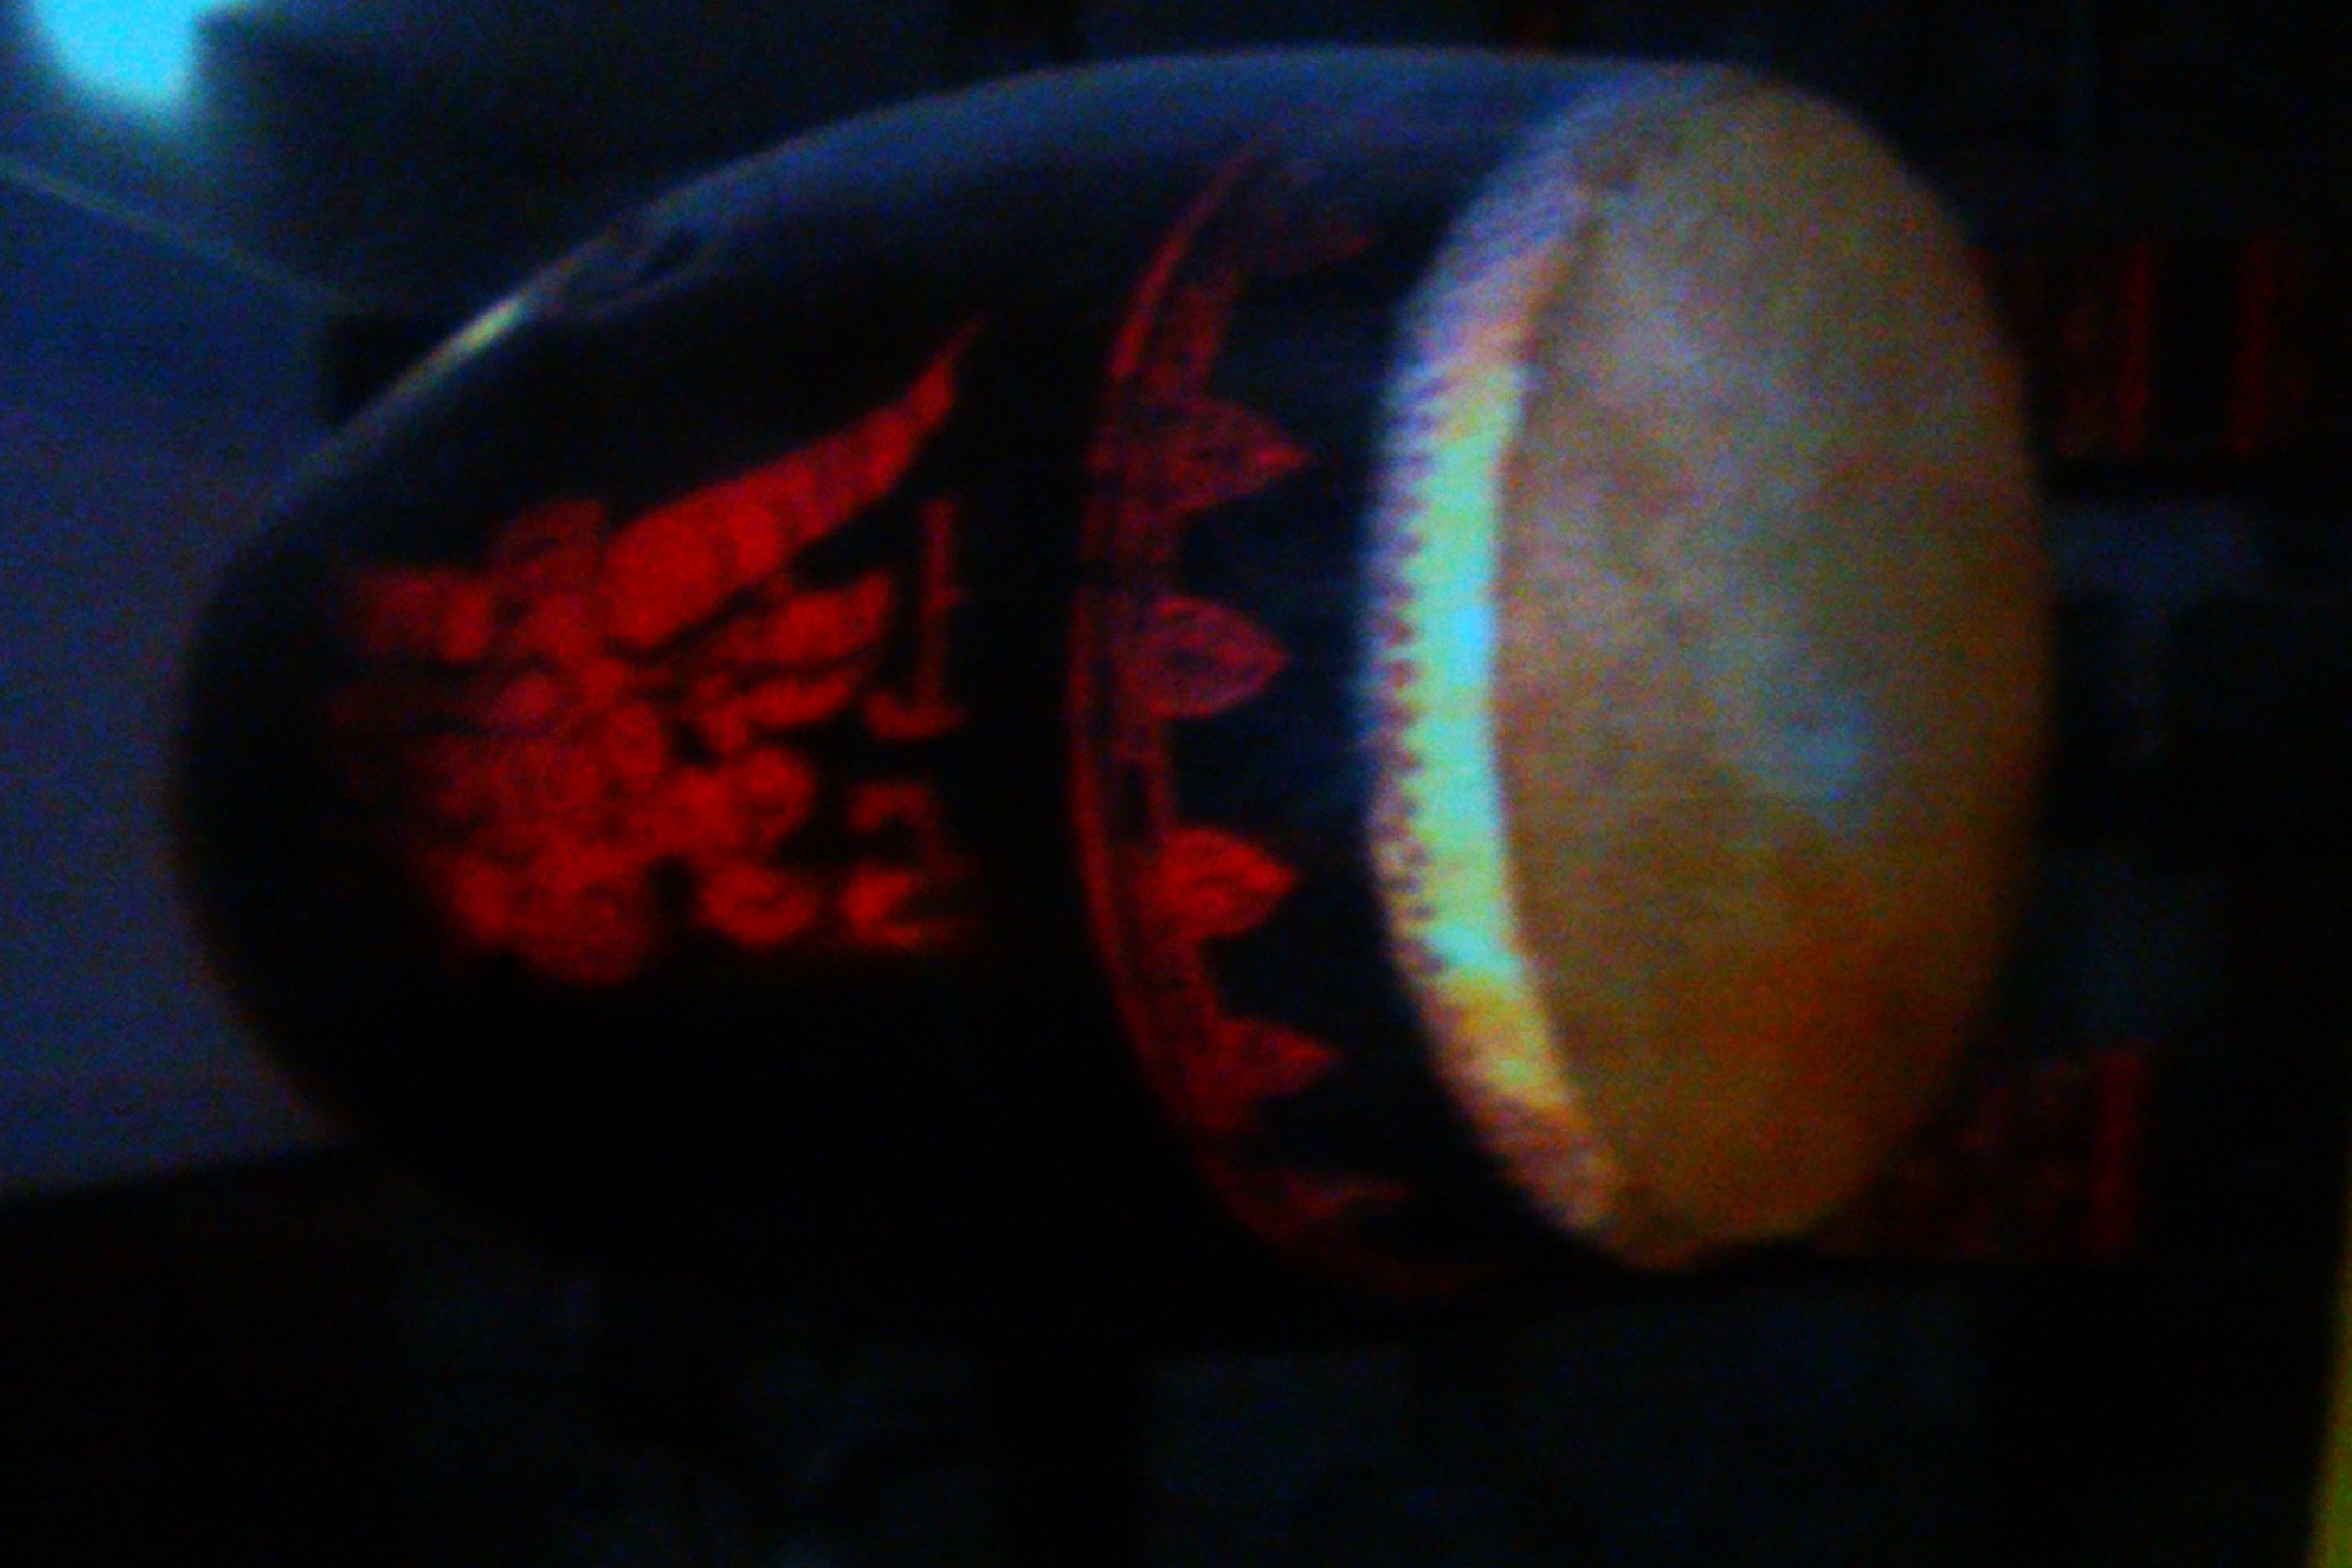 Chinese War Drum (2011 China tour)